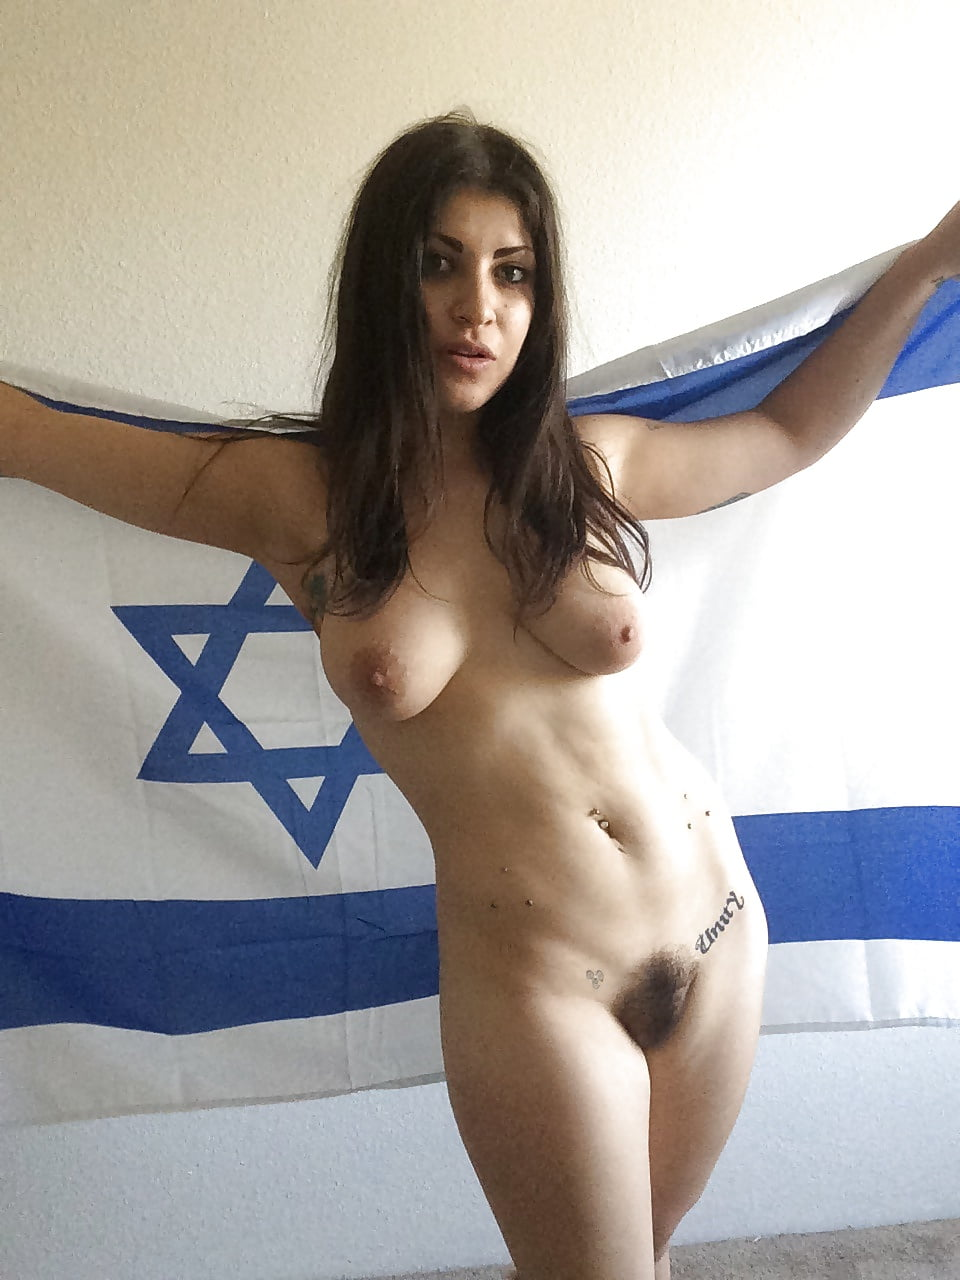 Xxx girls photo israel